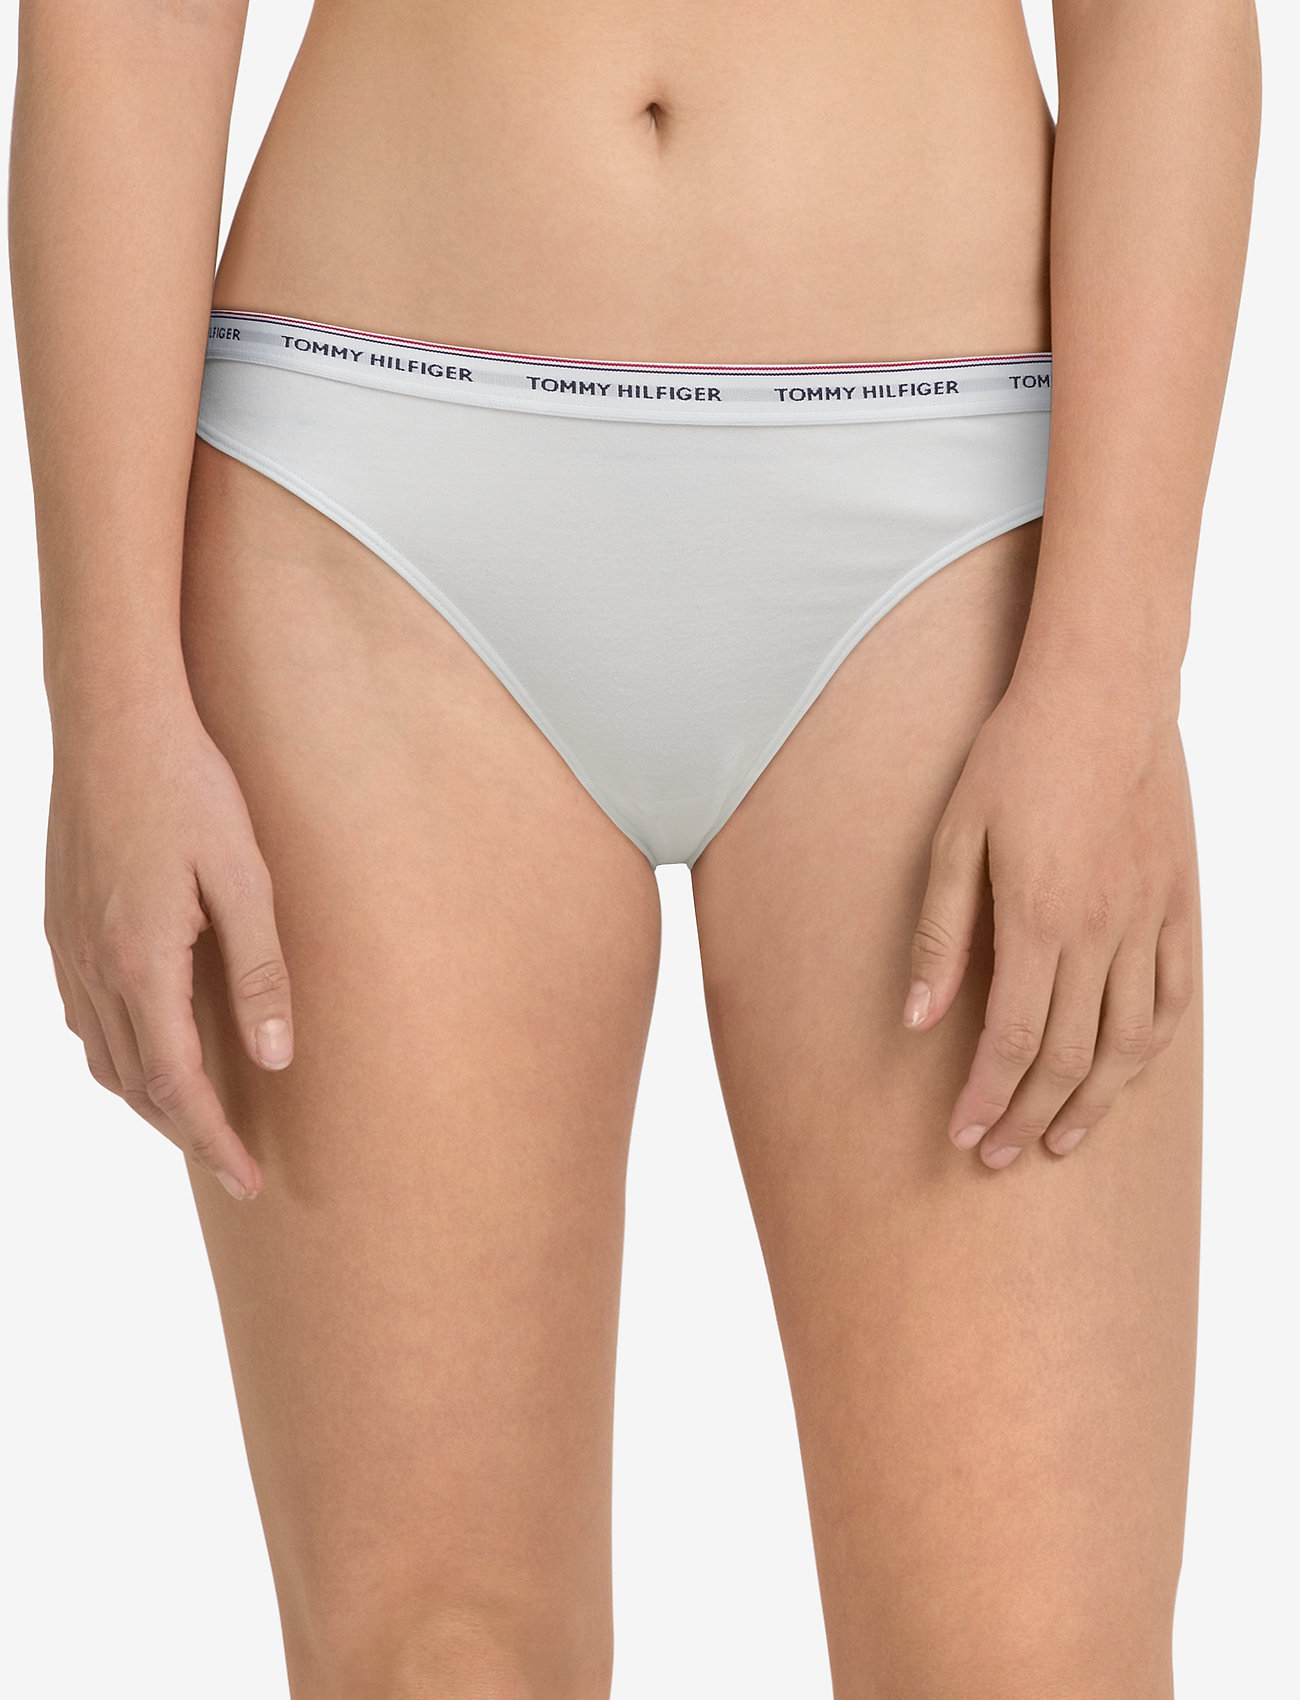 tommy hilfiger white thong